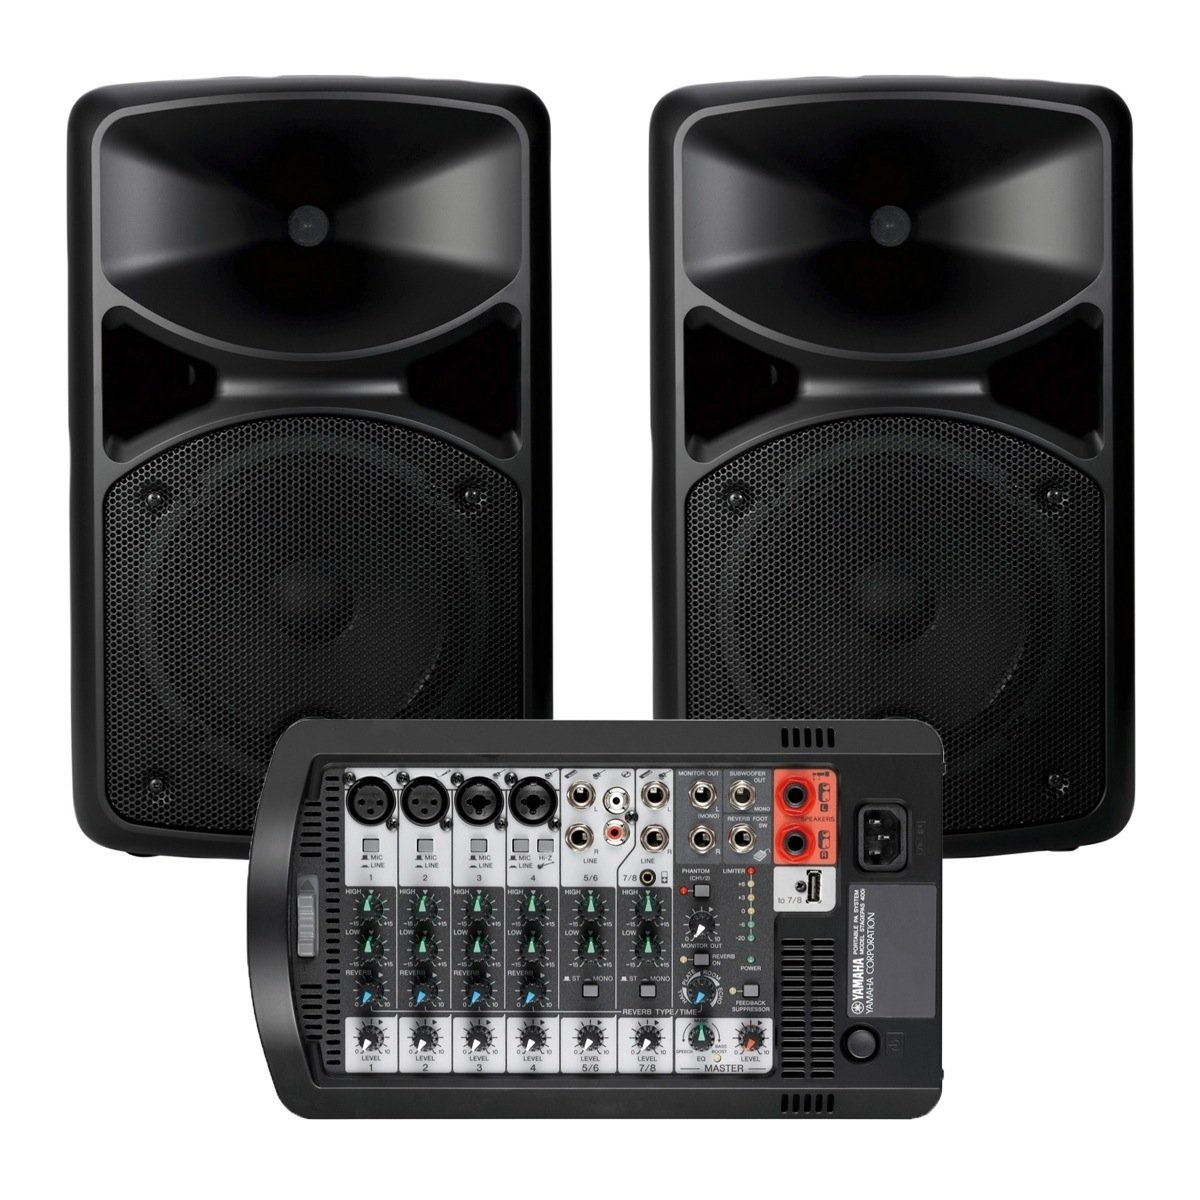 yamaha stagepas 400i portable pa system w speaker stands microphone and 2 xlr cables. Black Bedroom Furniture Sets. Home Design Ideas